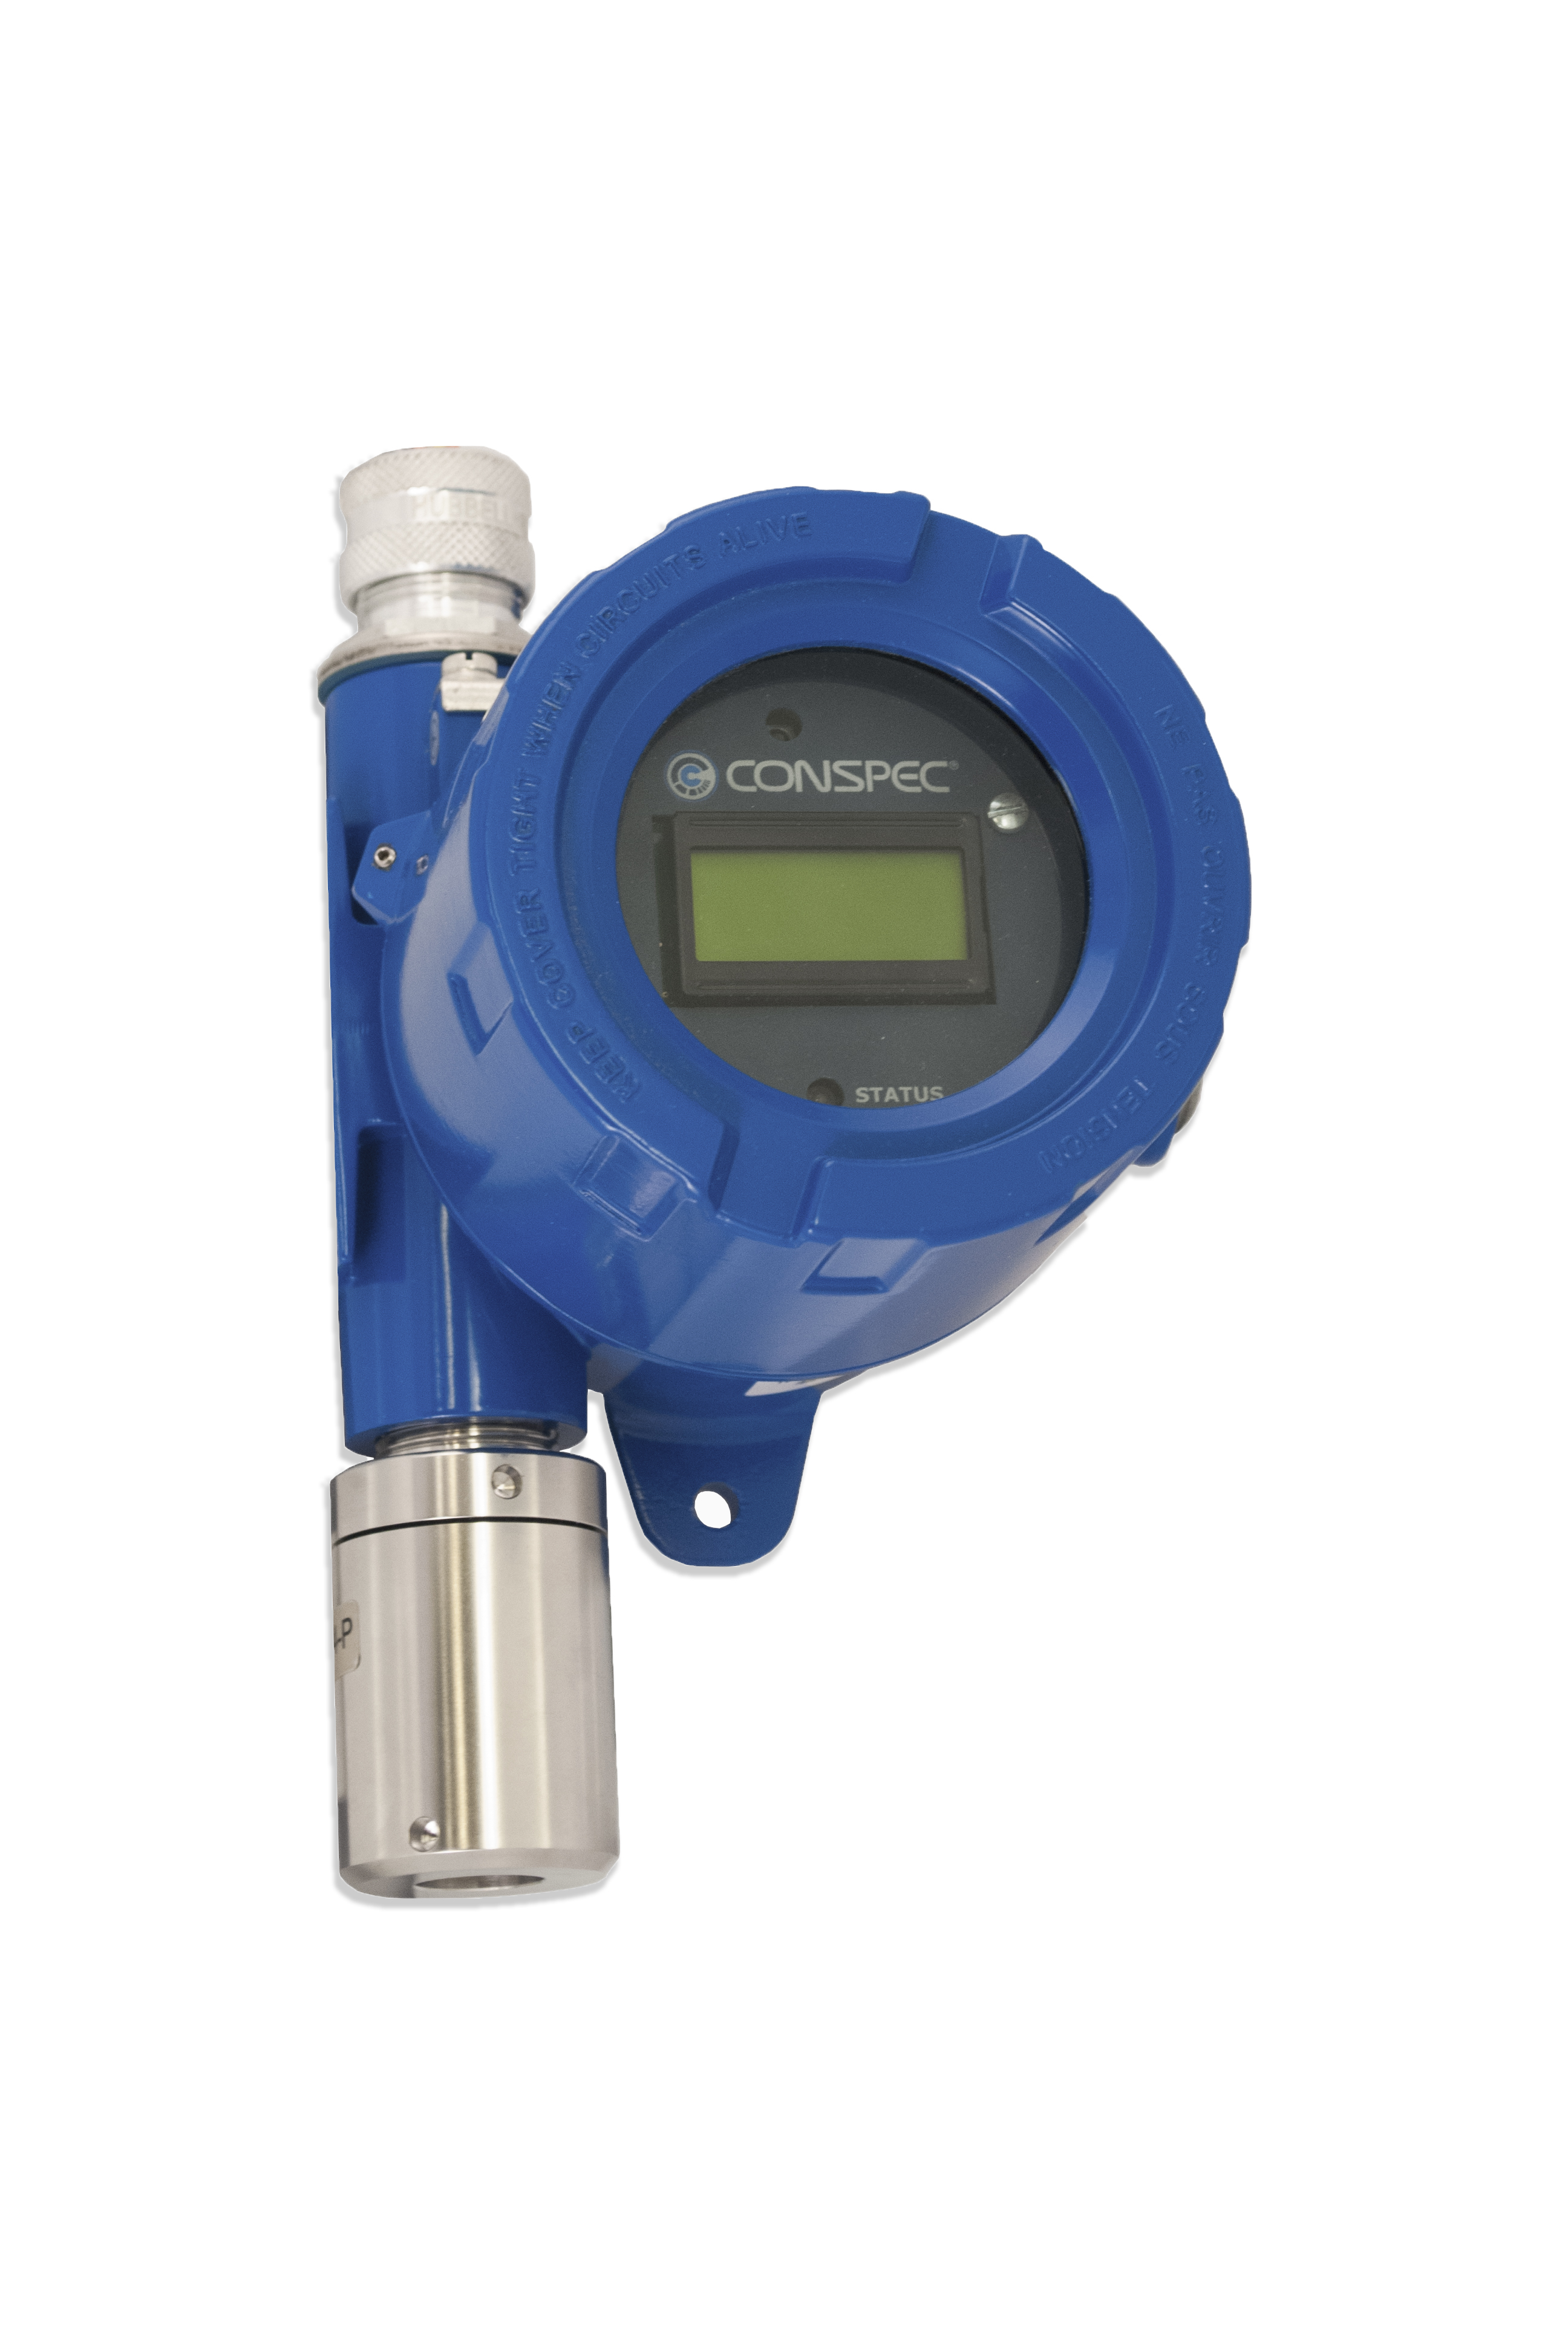 CX Series Explosion-Proof Gas Detector